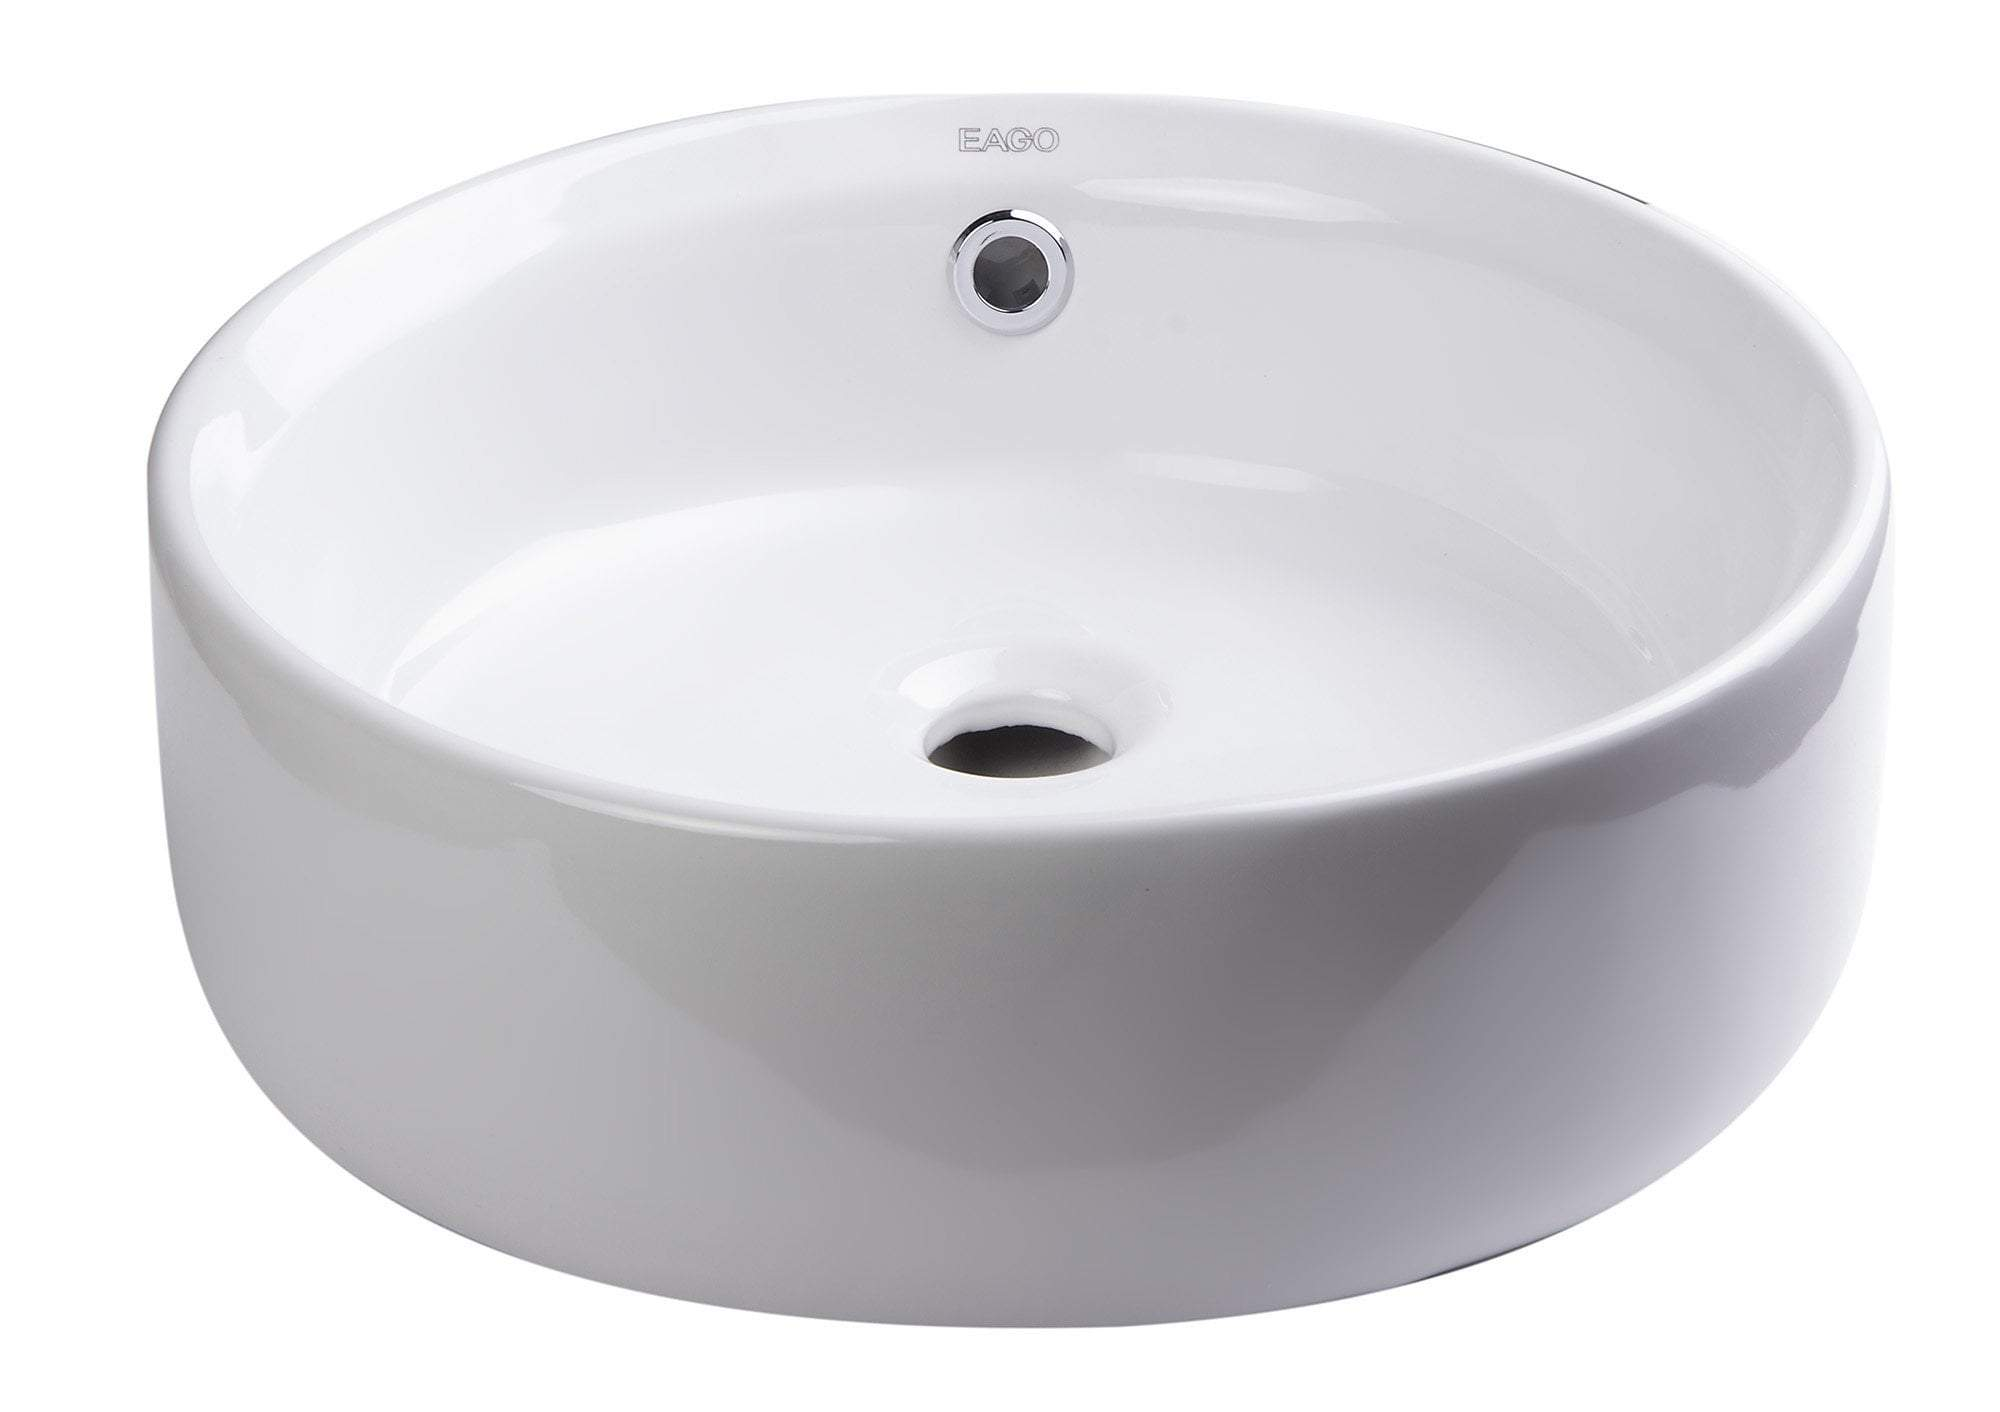 "16"" ROUND CERAMIC ABOVE MOUNT BATHROOM BASIN VESSEL SINK"